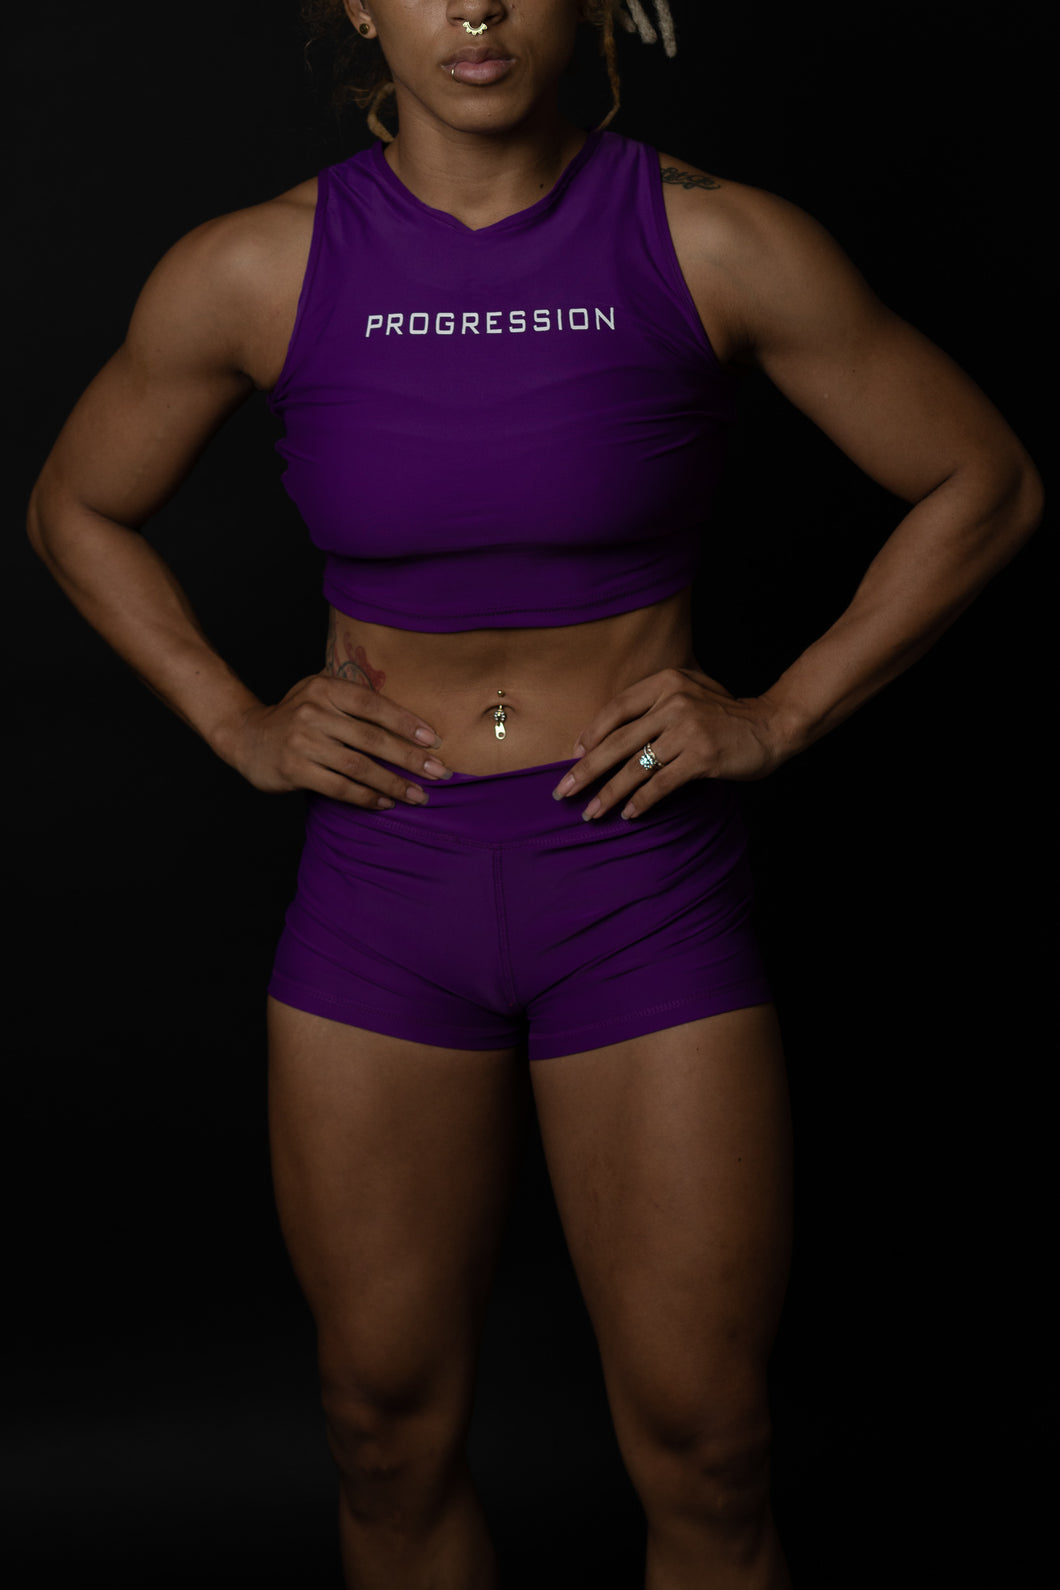 Electric Purple Sleeveless Progression Crop